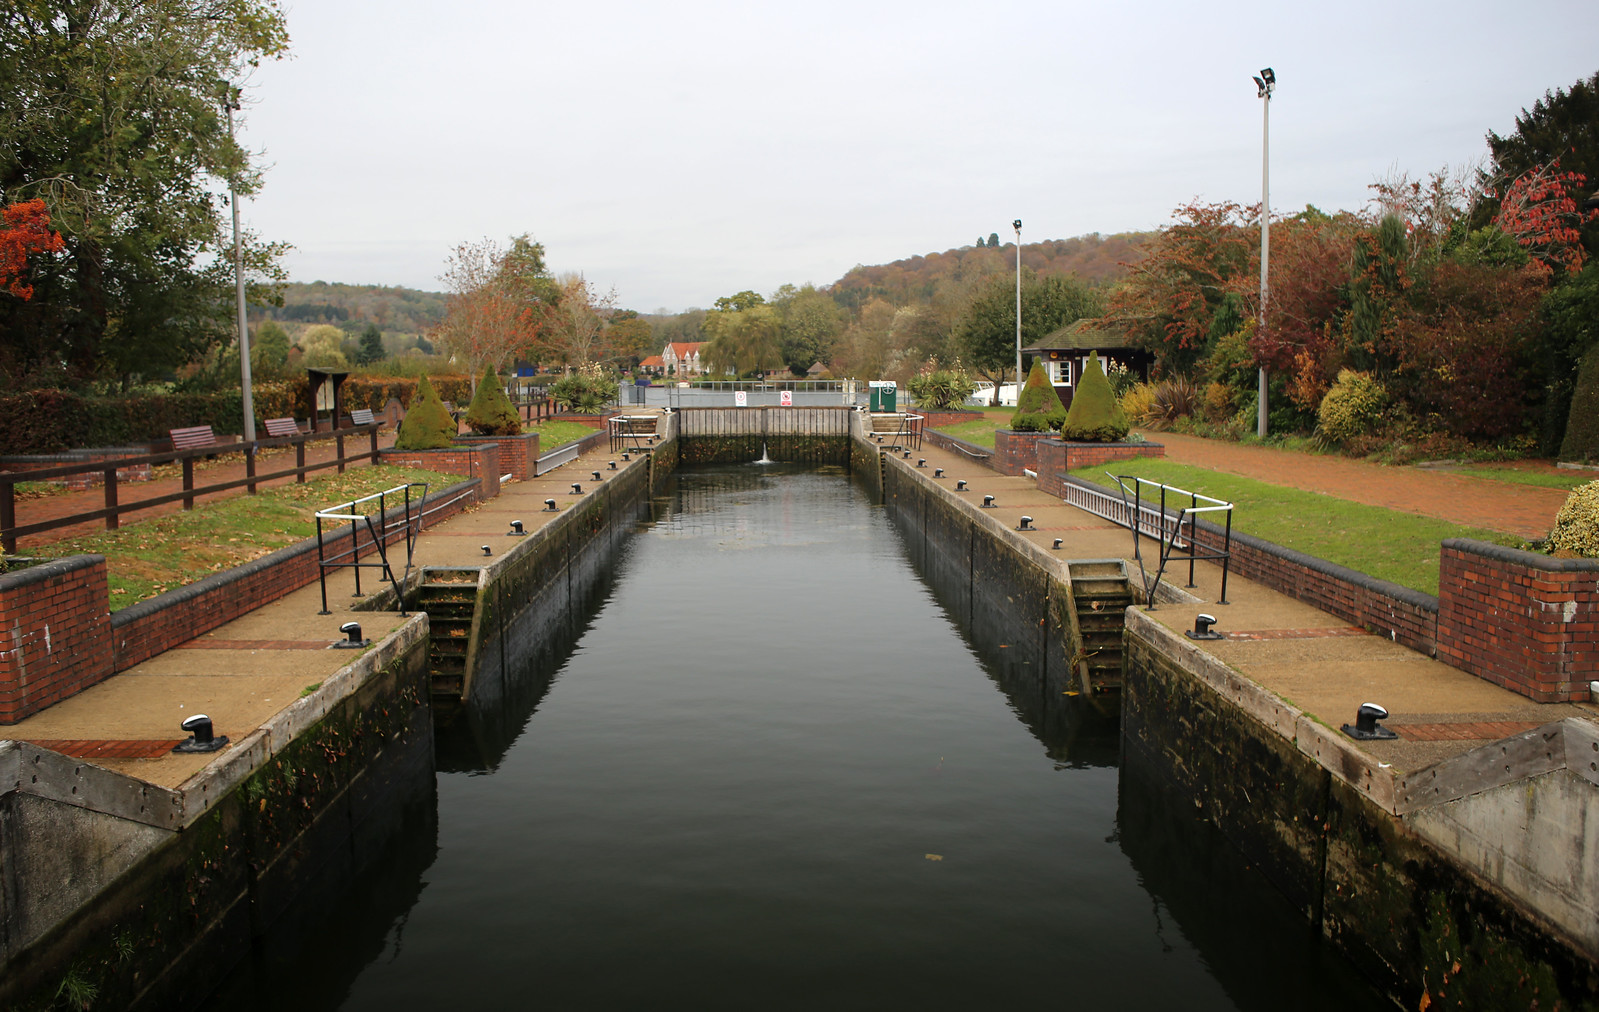 Hambleden Lock on the Thames